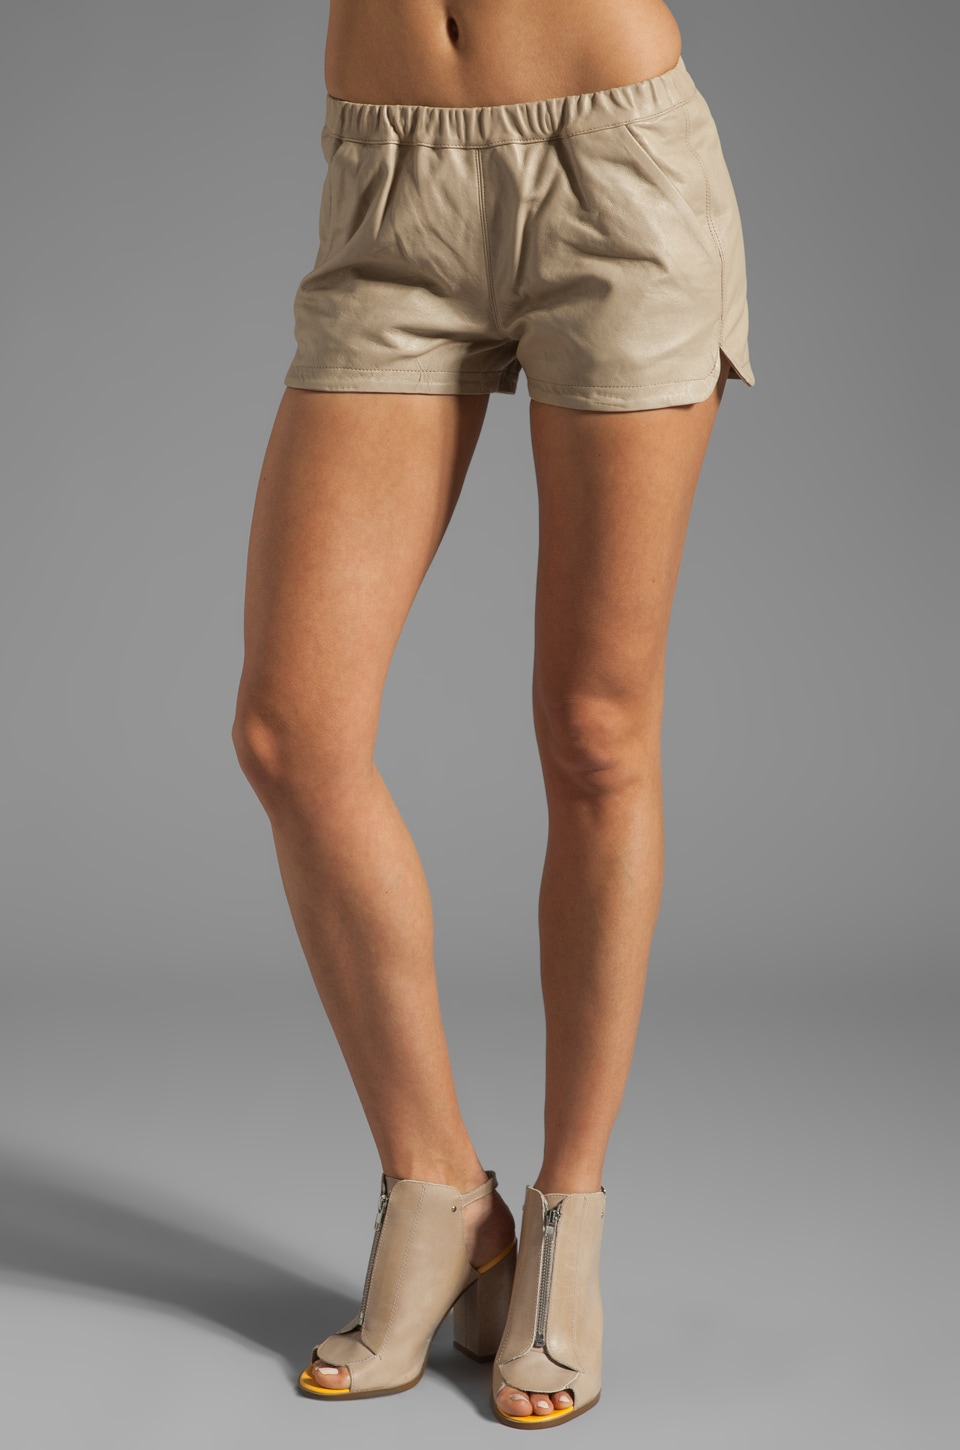 Mackage Ibbie Distressed Leather Shorts in Sand